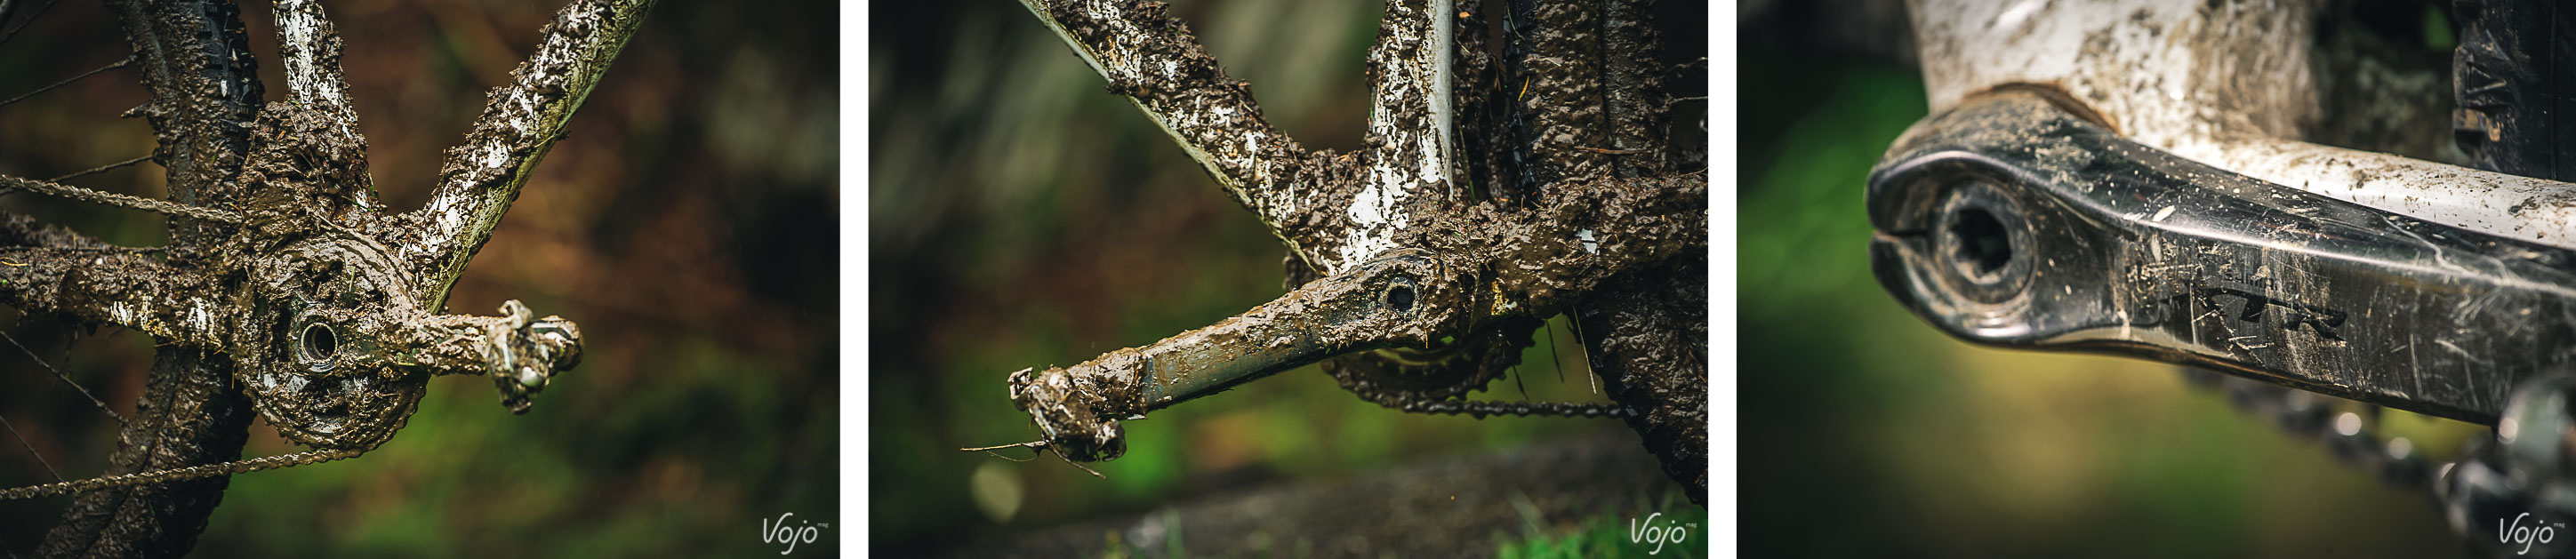 8-Shimano_XTR_Di2_Test_longue_duree_Copyright_Beart_VojoMag-1